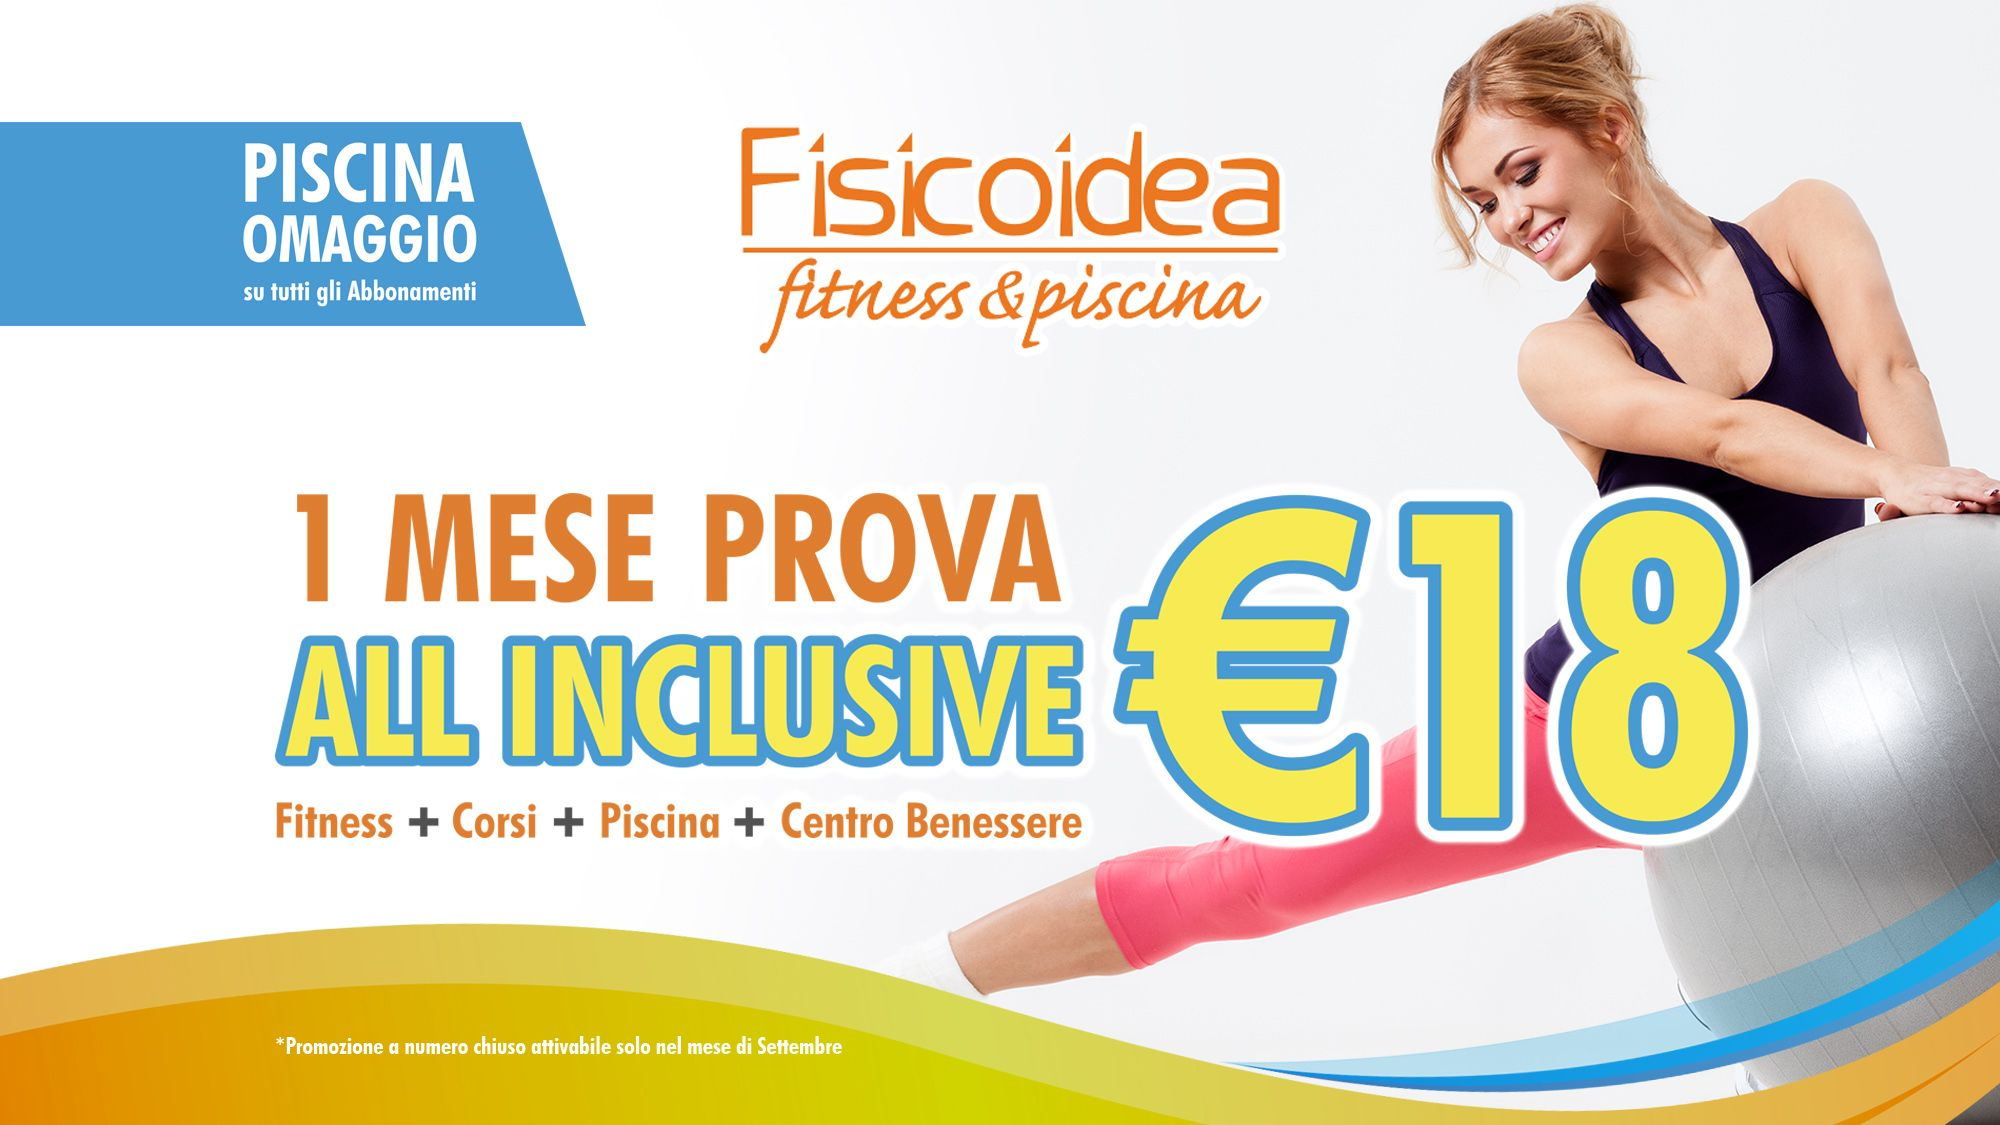 fisicoidea palestra fisicoidea fitness piscina a montesilvano pescara. Black Bedroom Furniture Sets. Home Design Ideas